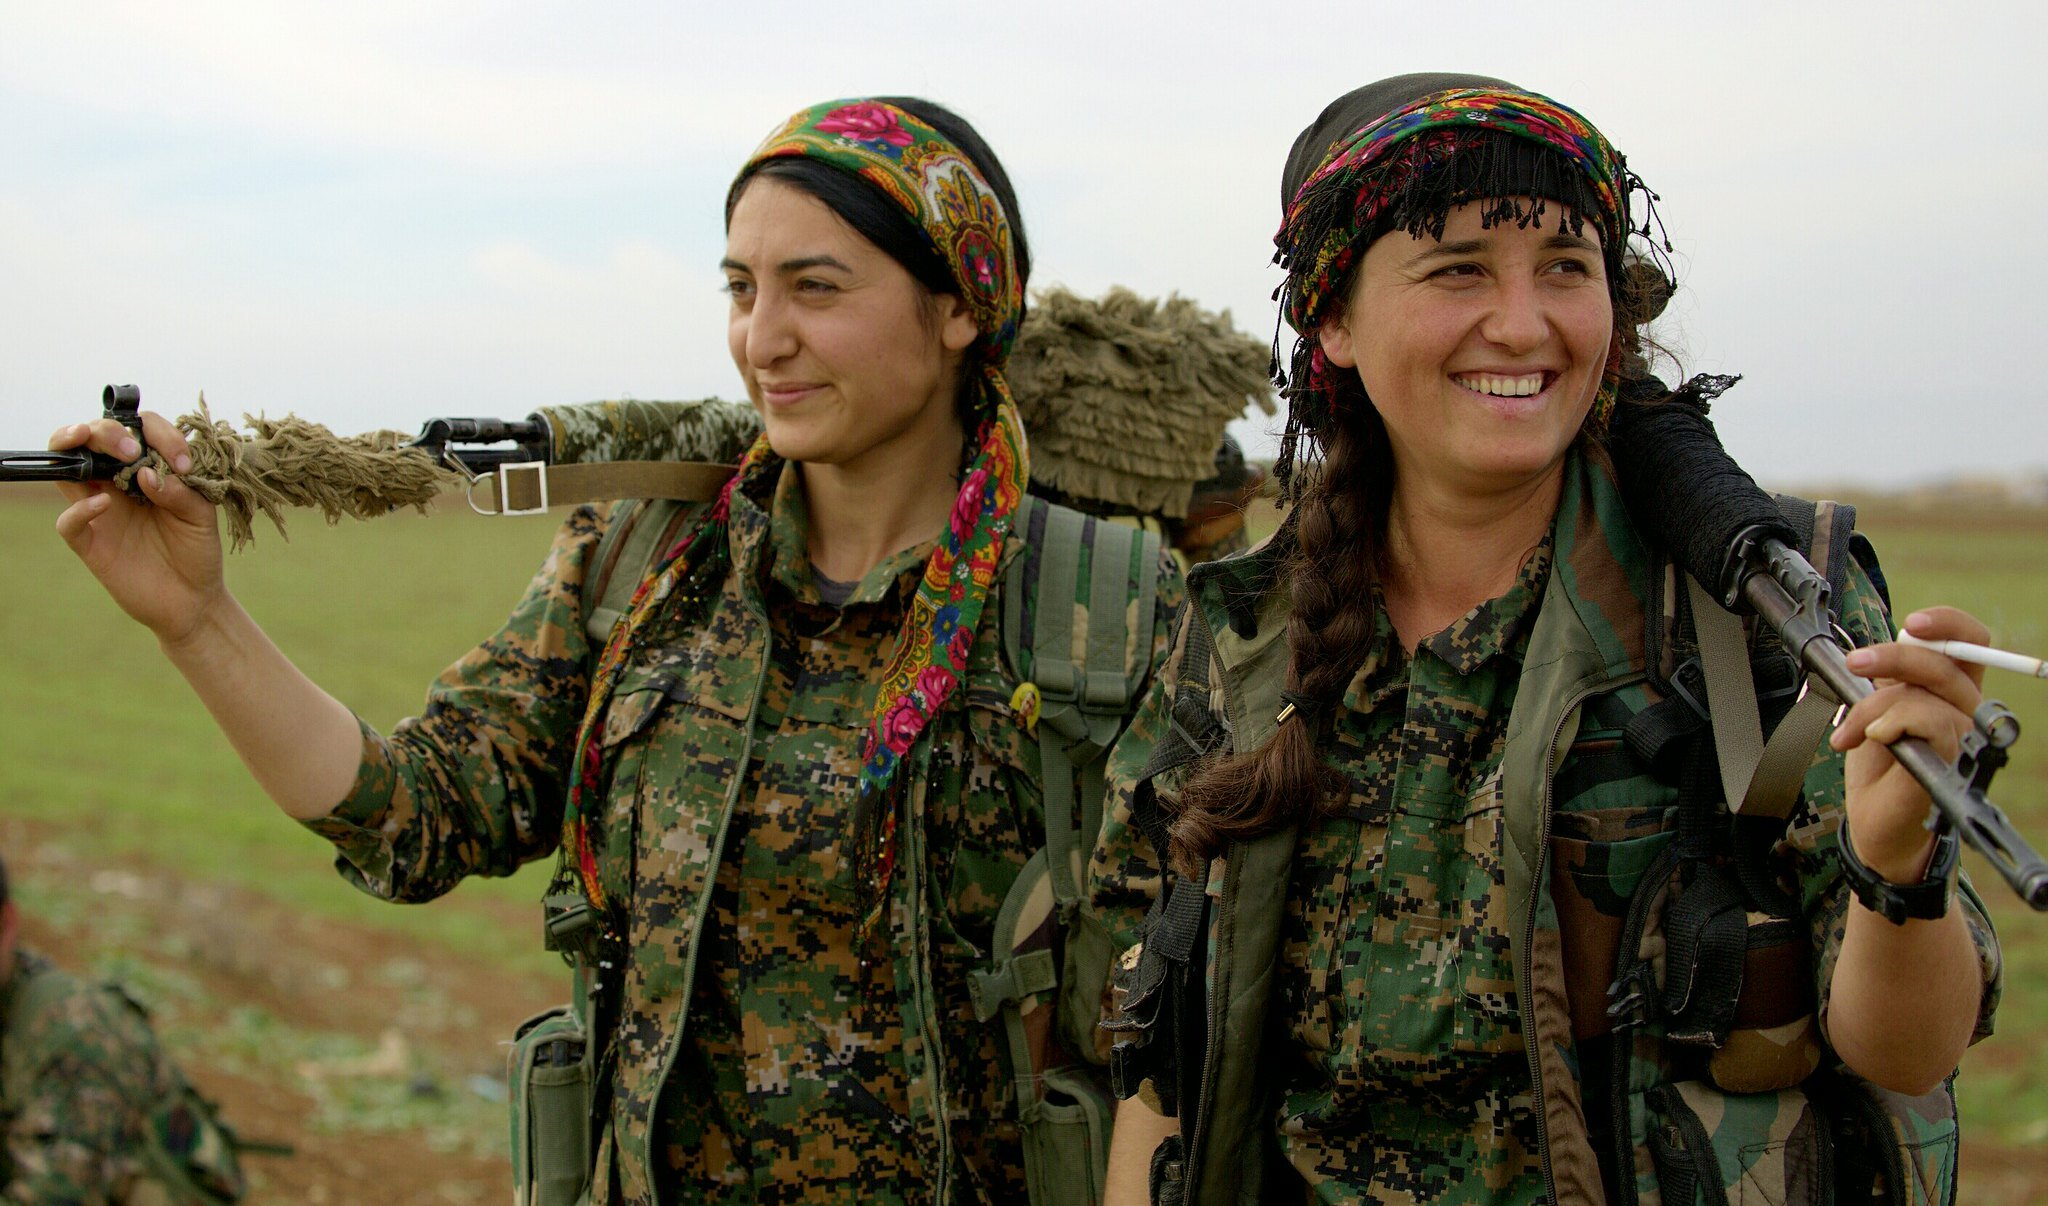 PICTURED:  Two Female Kurdish YPG fighters smile for the camera. Kurdish peoples are known to be more progressive than the societies in which they live, which includes their attitudes towards women's rights.  Photo Credit   Kurdish struggle ,  CC 2.0.